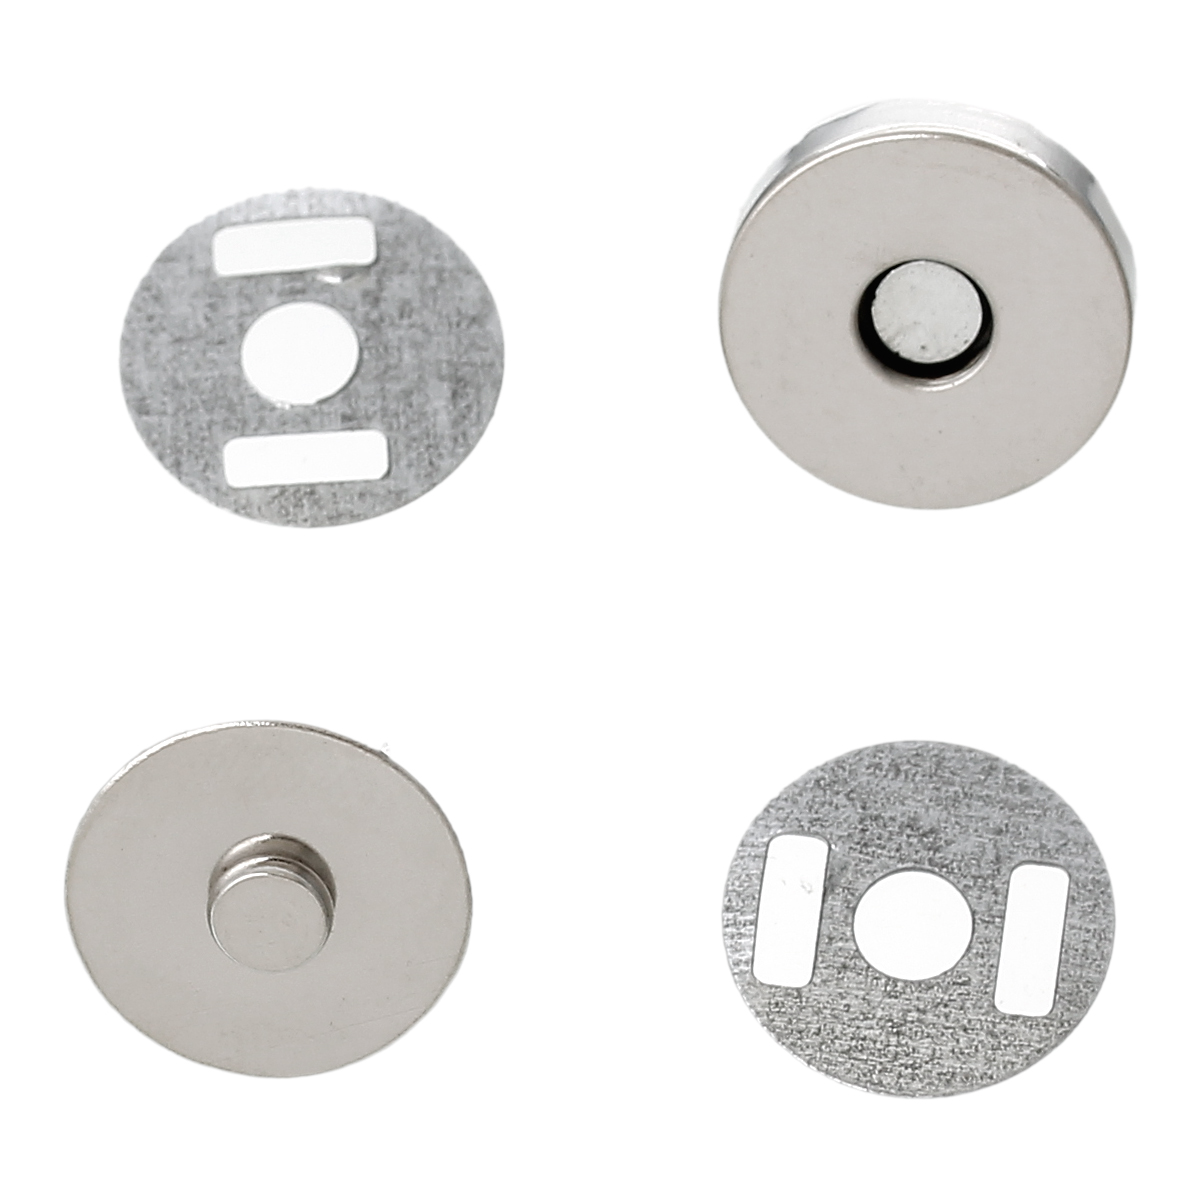 DoreenBeads 20 Sets Dull Silver Color Magnetic Purse Snap Clasps/ Closure For Purse Handbag 14mm(4/8